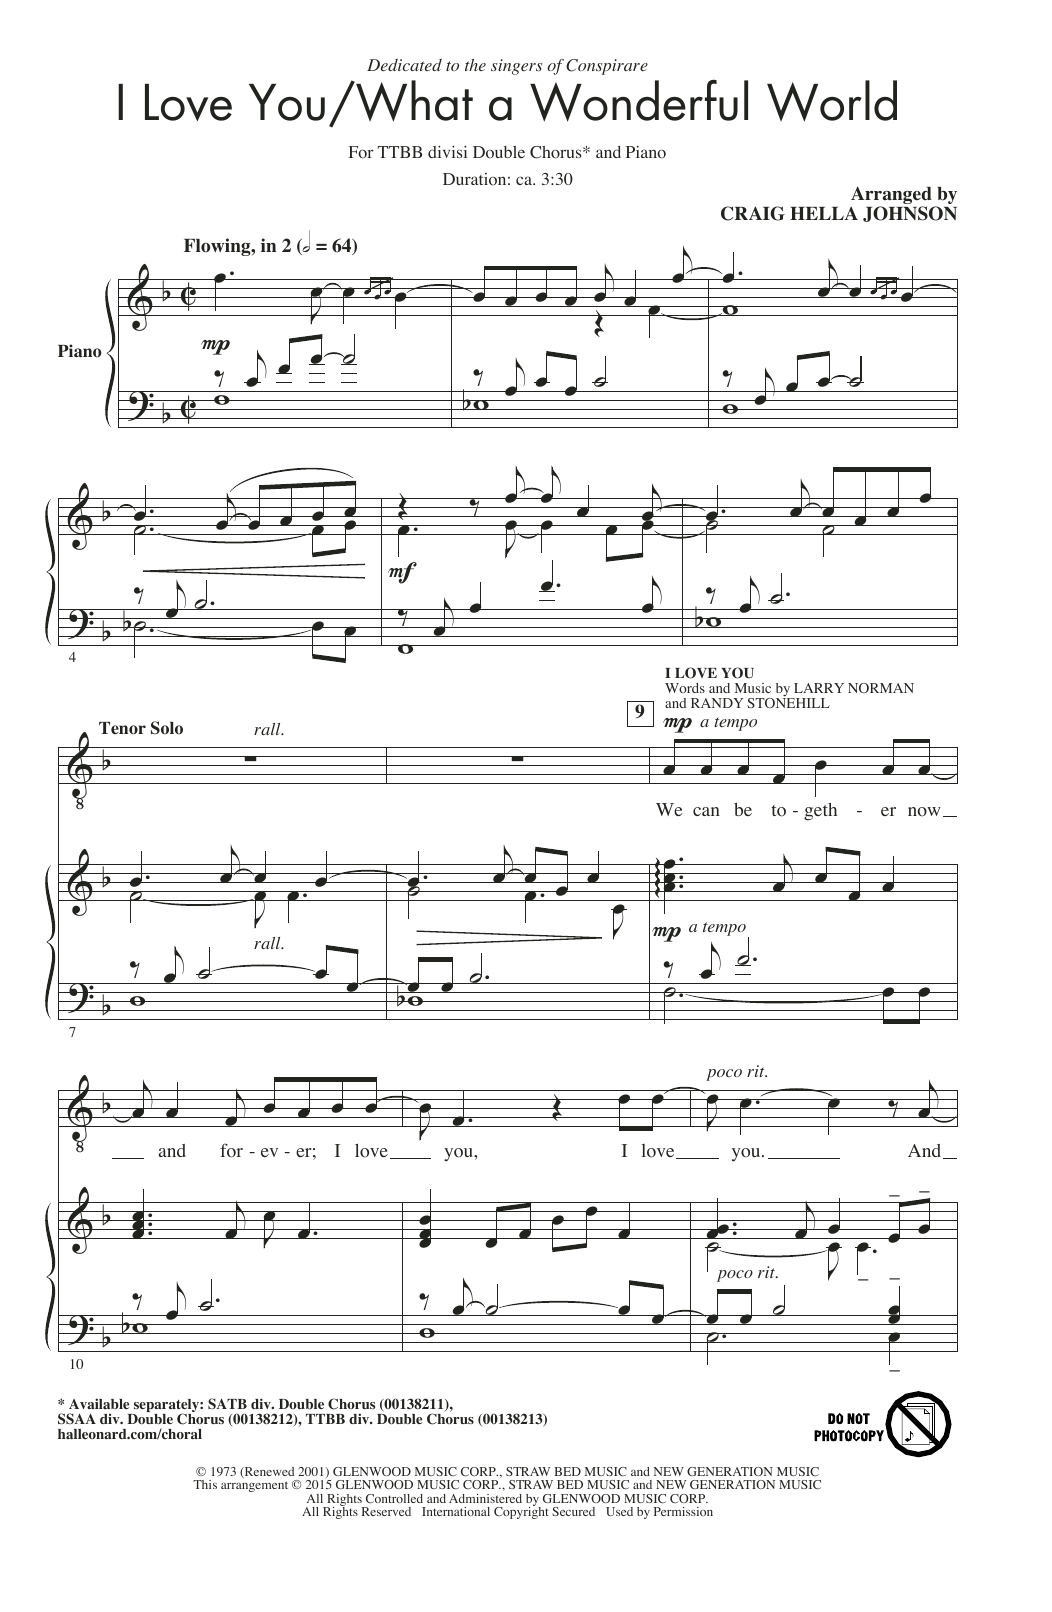 I Love You / What A Wonderful World (arr. Craig Hella Johnson) Sheet Music